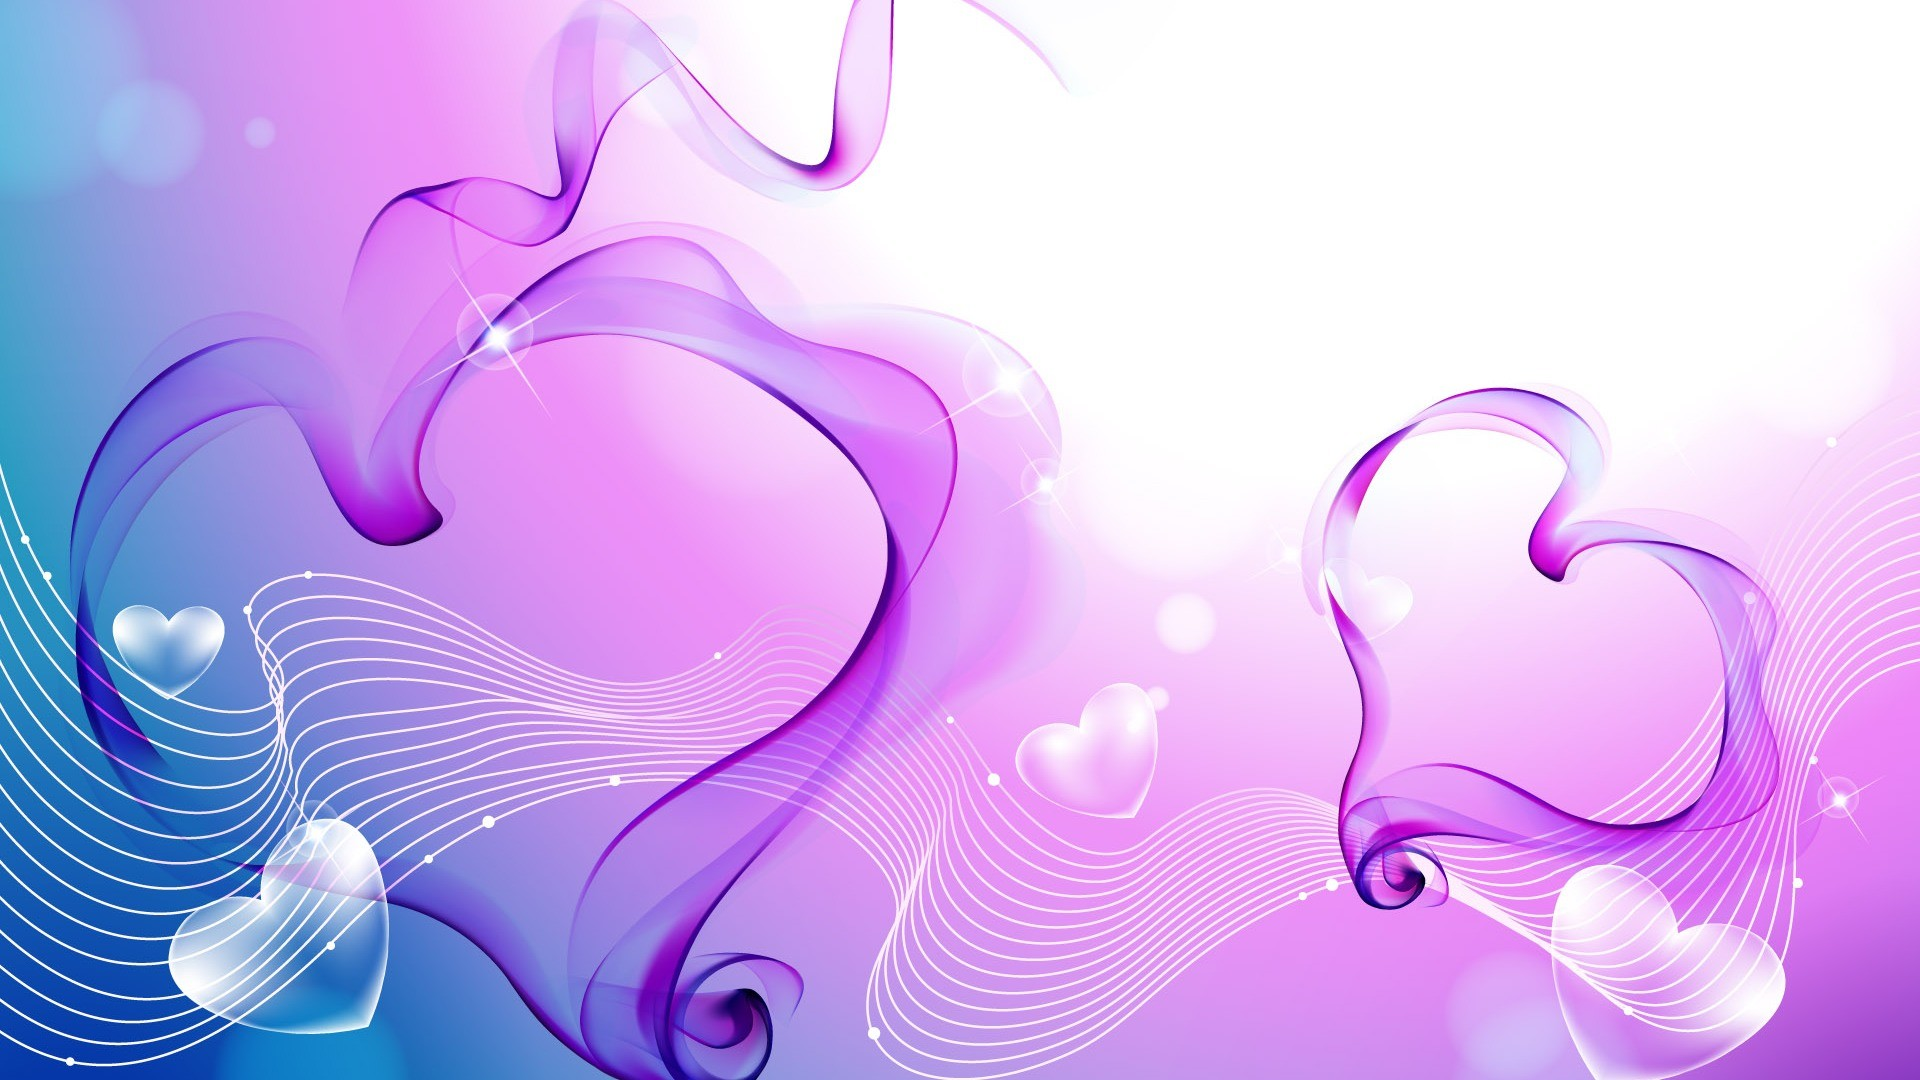 Cool Backgrounds with Abstract Love Shape in Purple